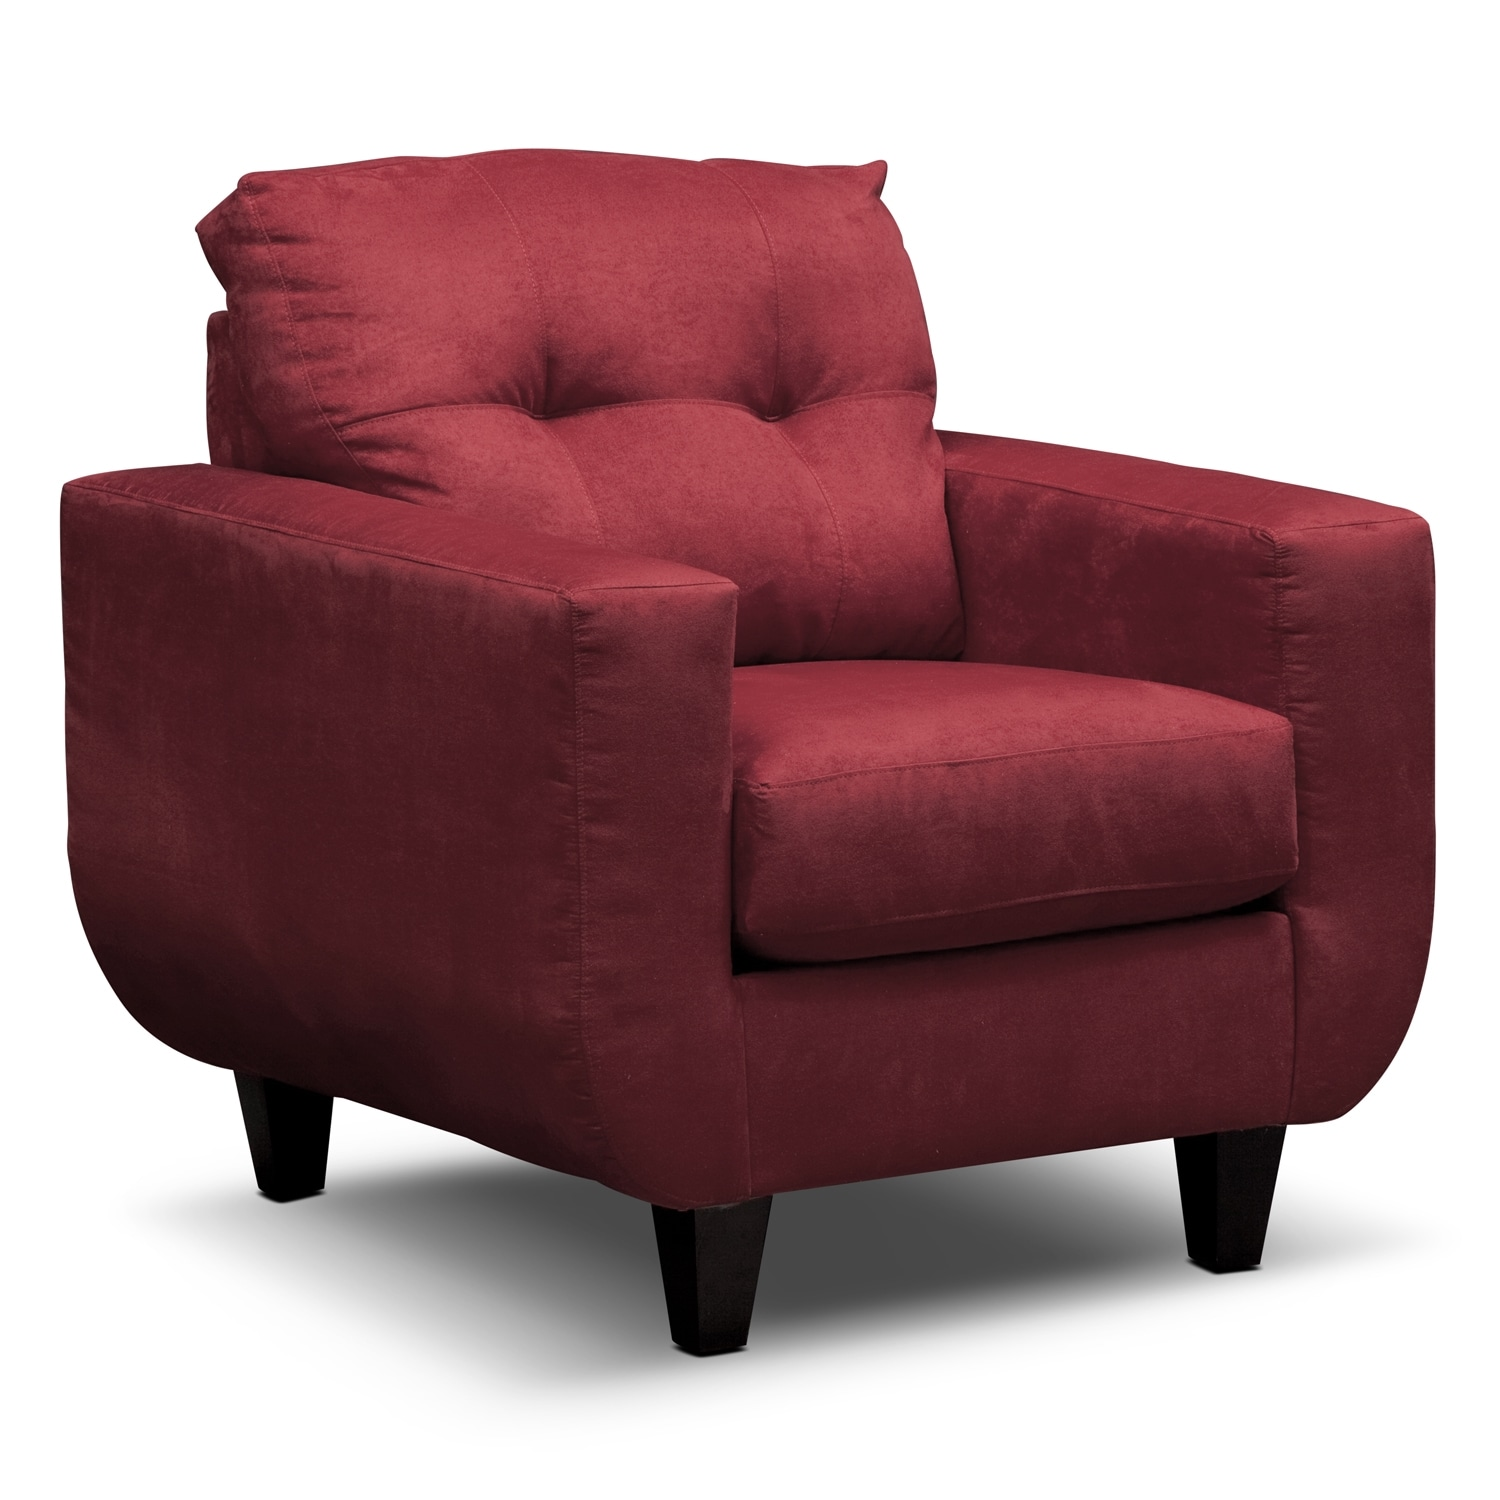 Living Room Furniture - Walker Red Chair